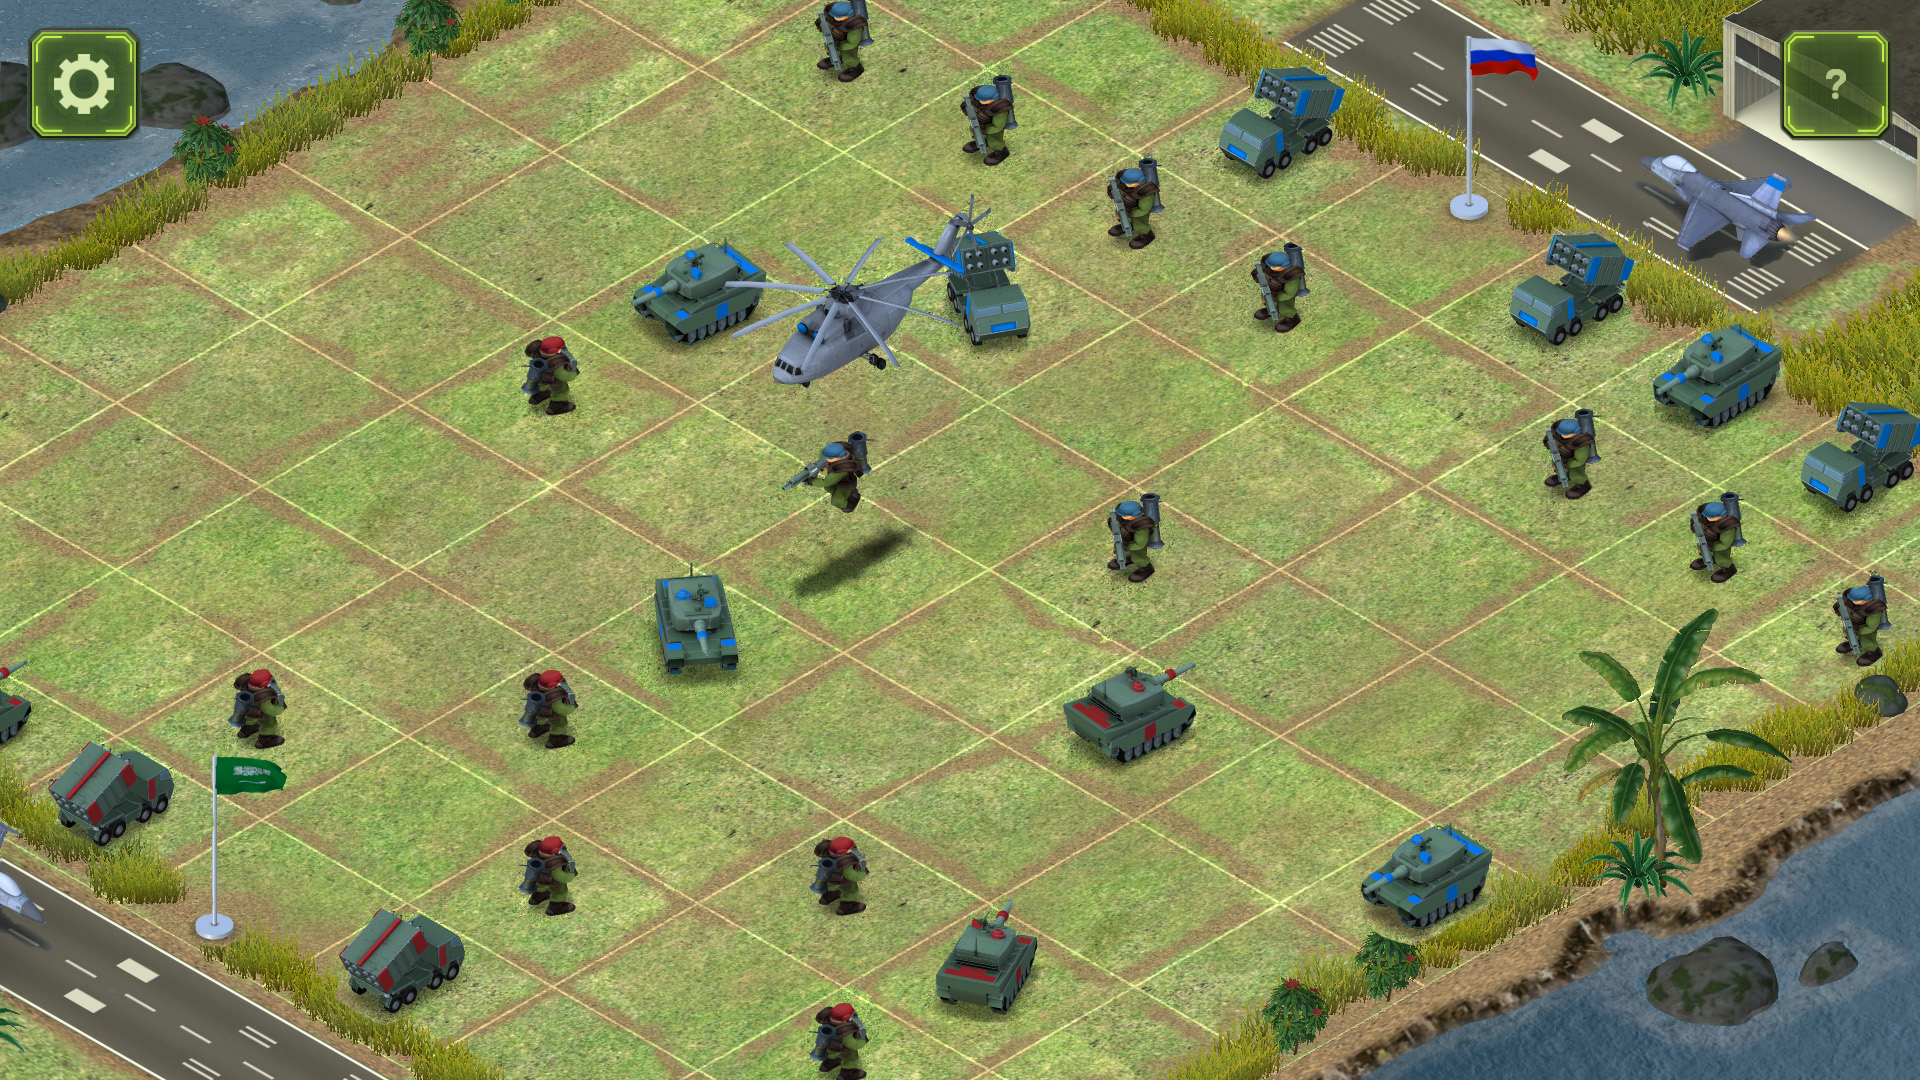 Android] Board Battlefield - turn based strategy game - Unity Forum